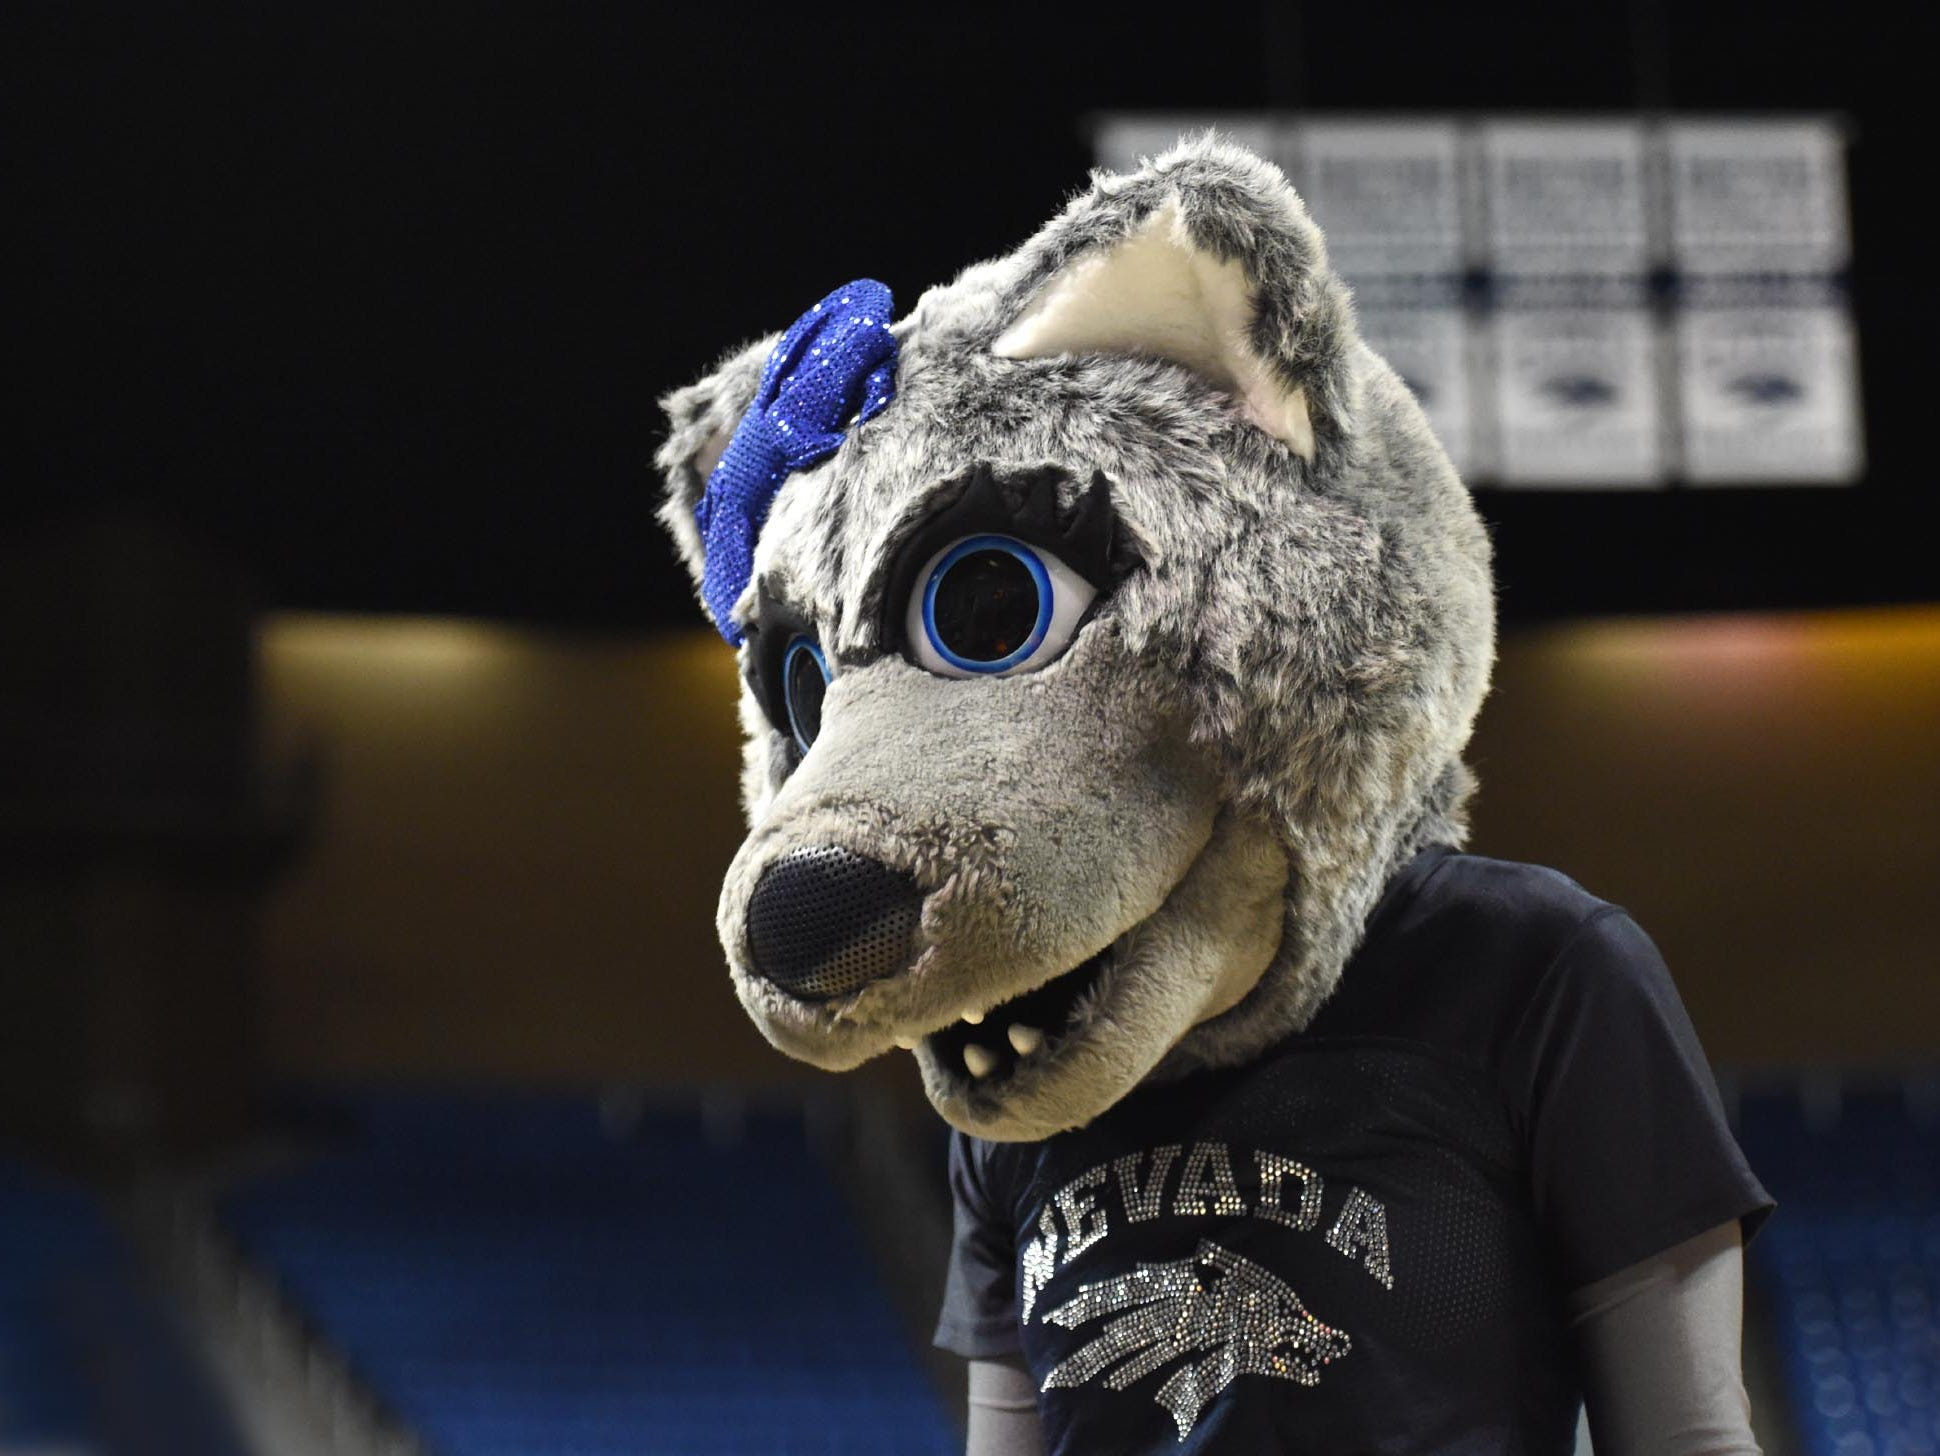 Images of Nevada women's defeating UNLV on Wednesday night at Lawlor Events Center on Jan. 30, 2019. Nevada beat UNLV 70-62.